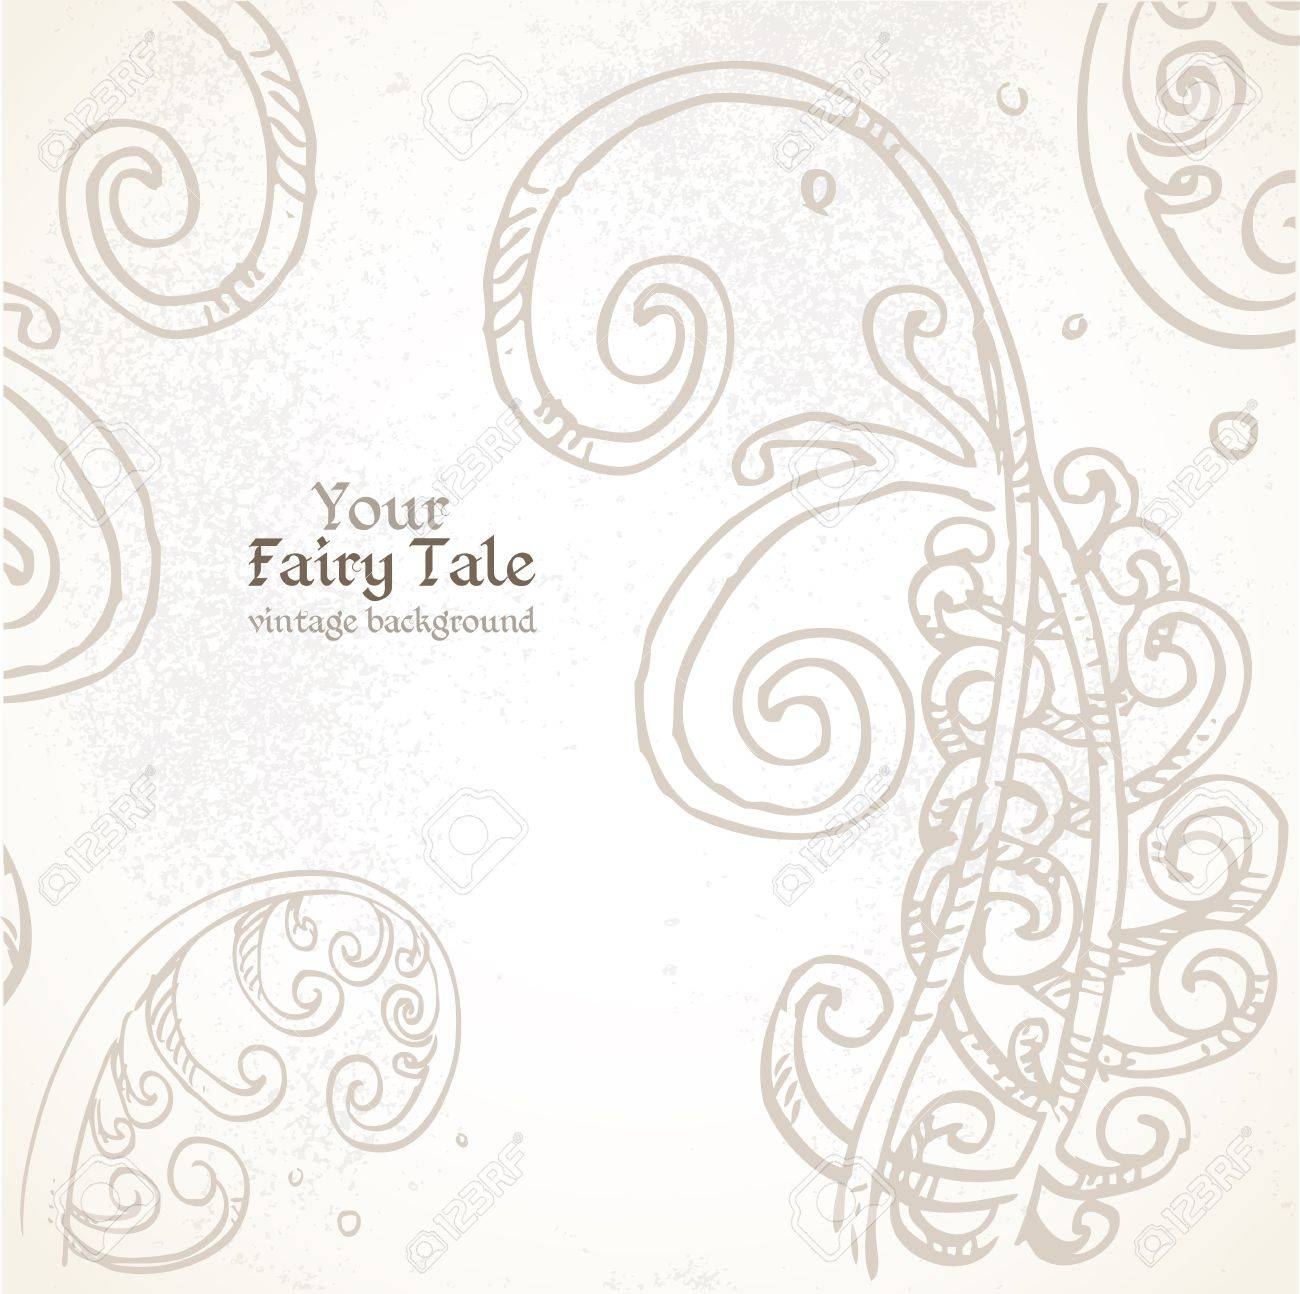 Your Fairy tale vintage background Stock Vector - 17241551